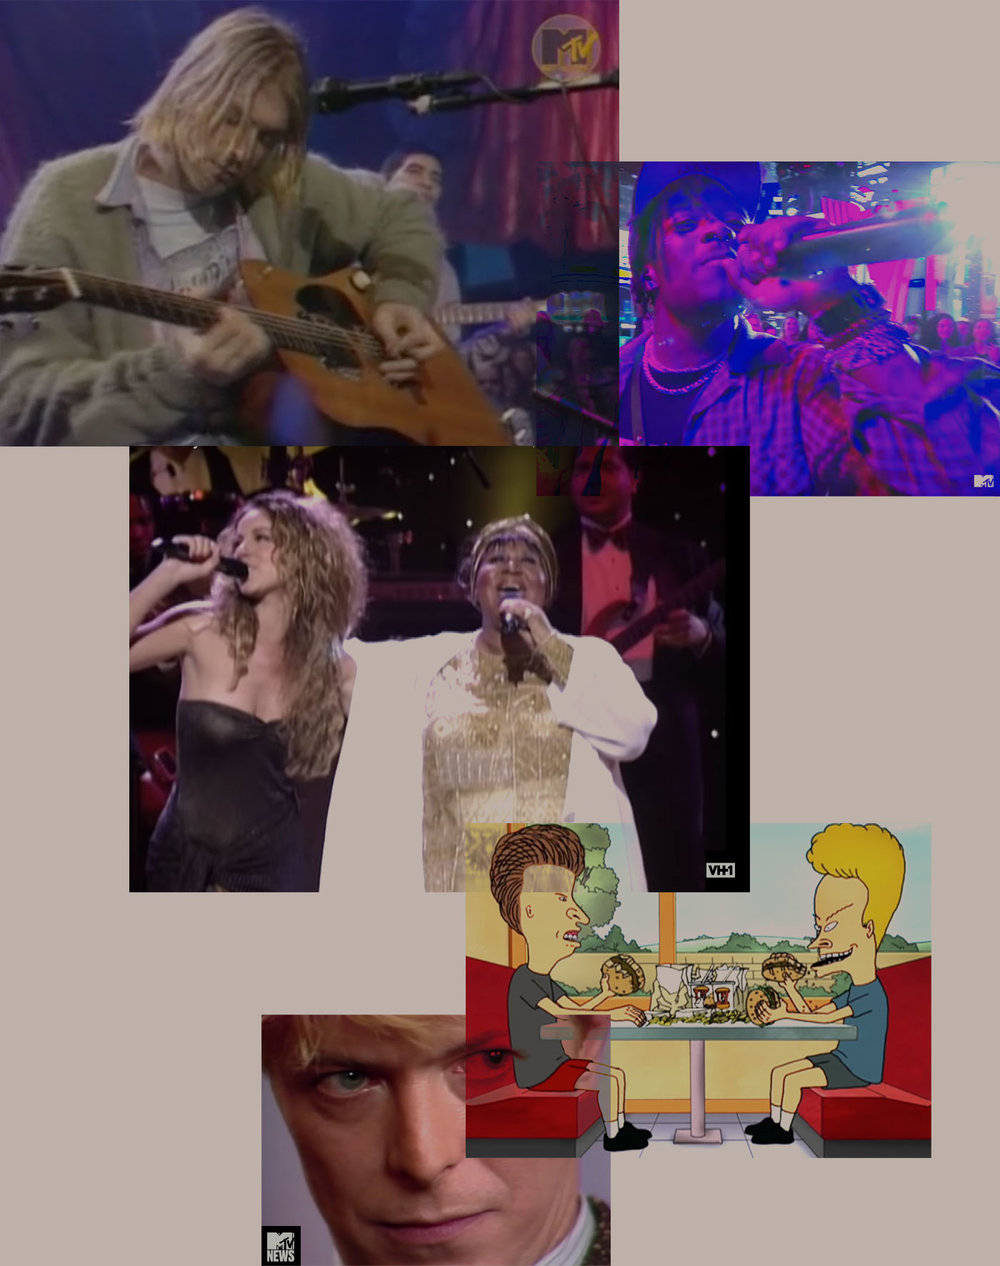 """MTV's and VH1's priceless content through the ages, from top to bottom:  MTV Unplugged  with Nirvana in 1993, Lil Uzi Vert performs """"XO Tour Llif3"""" on  TRL  in 2017, Aretha Franklin and Mariah Carey perform """"Chain of Fools"""" at  VH1 Divas  in 1998, """"Burger Kings!"""" with MTV's  Beavis and Butthead  from 2012 and David Bowie criticizes MTV for not playing videos by black artists,  MTV News  1983."""